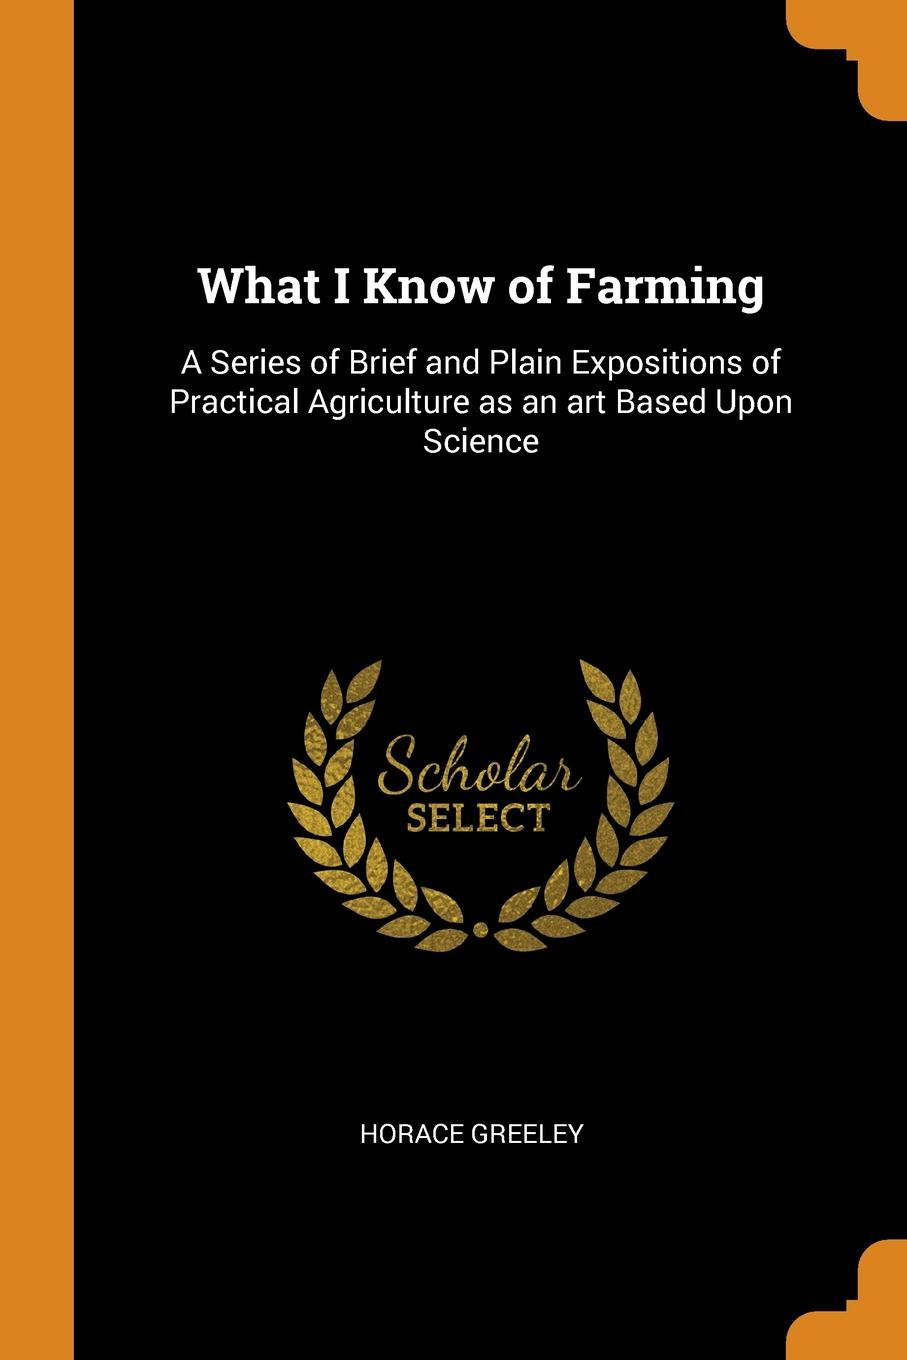 What I Know of Farming. A Series of Brief and Plain Expositions of Practical Agriculture as an art Based Upon Science